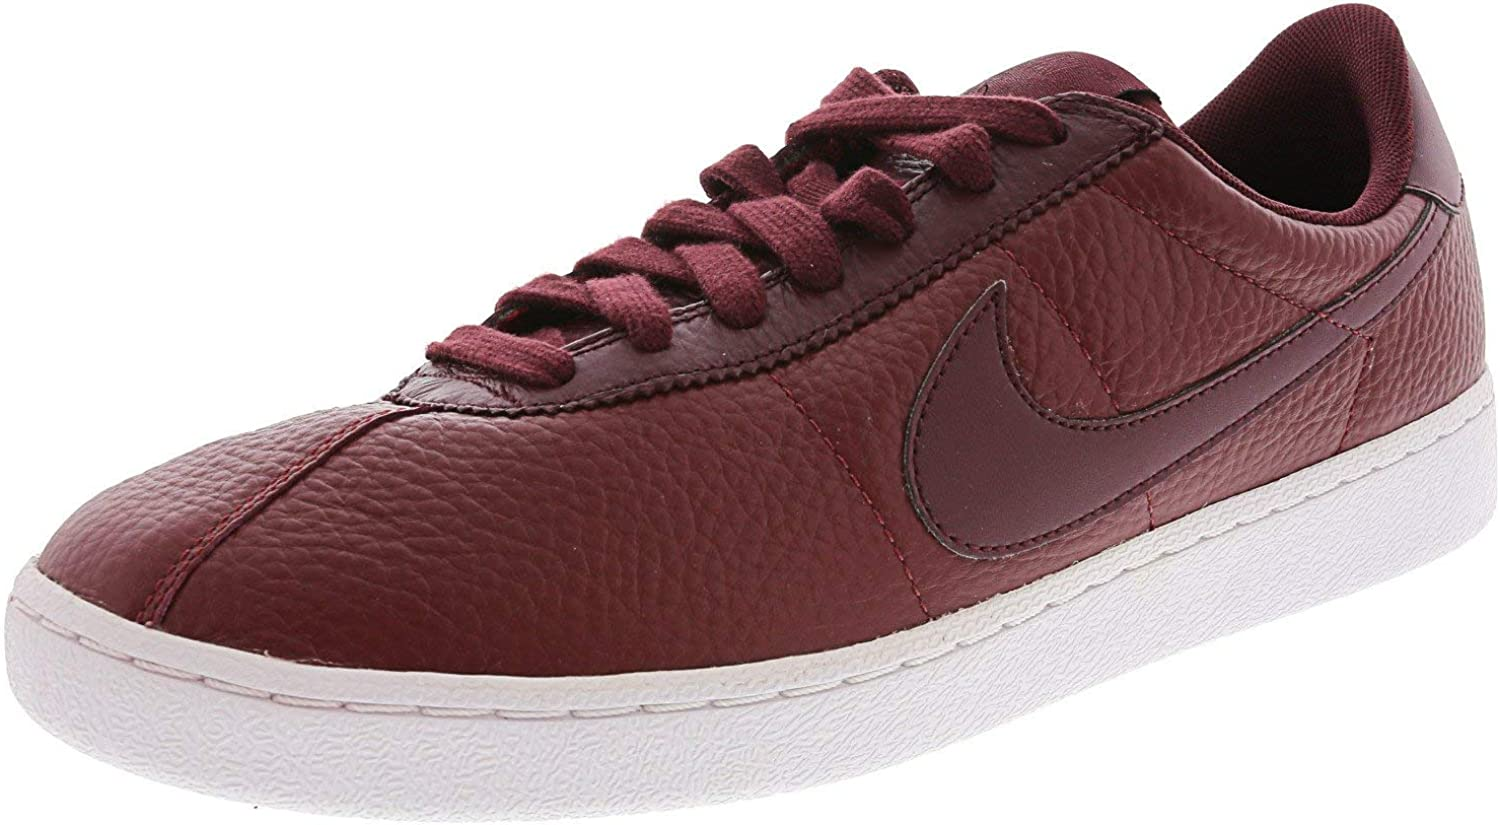 Nike Men's Bruin Fashion Sneakers